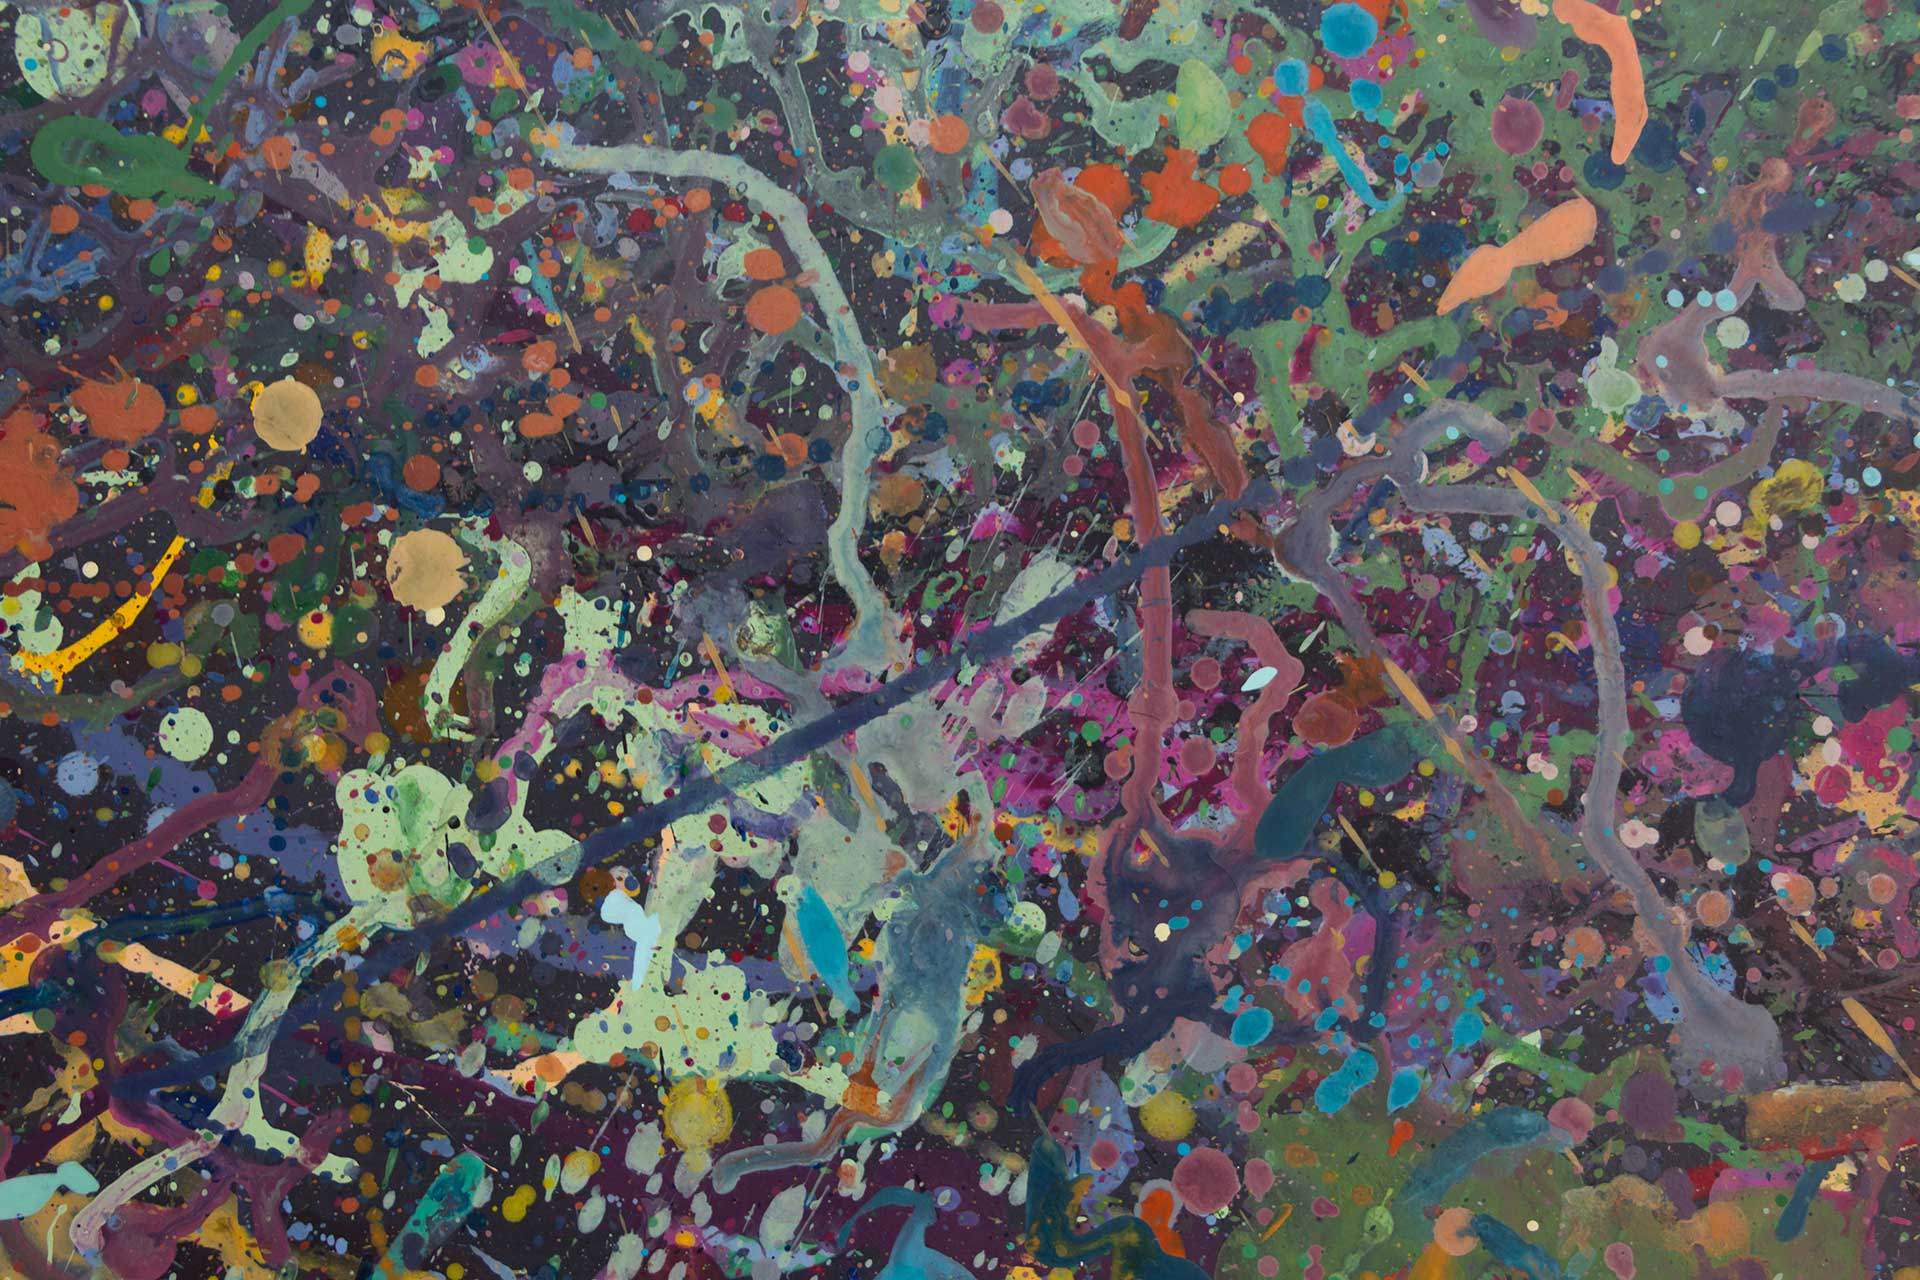 Abstract expressionism painting - Celebrities at a party in Yarra Glen - Detail 5